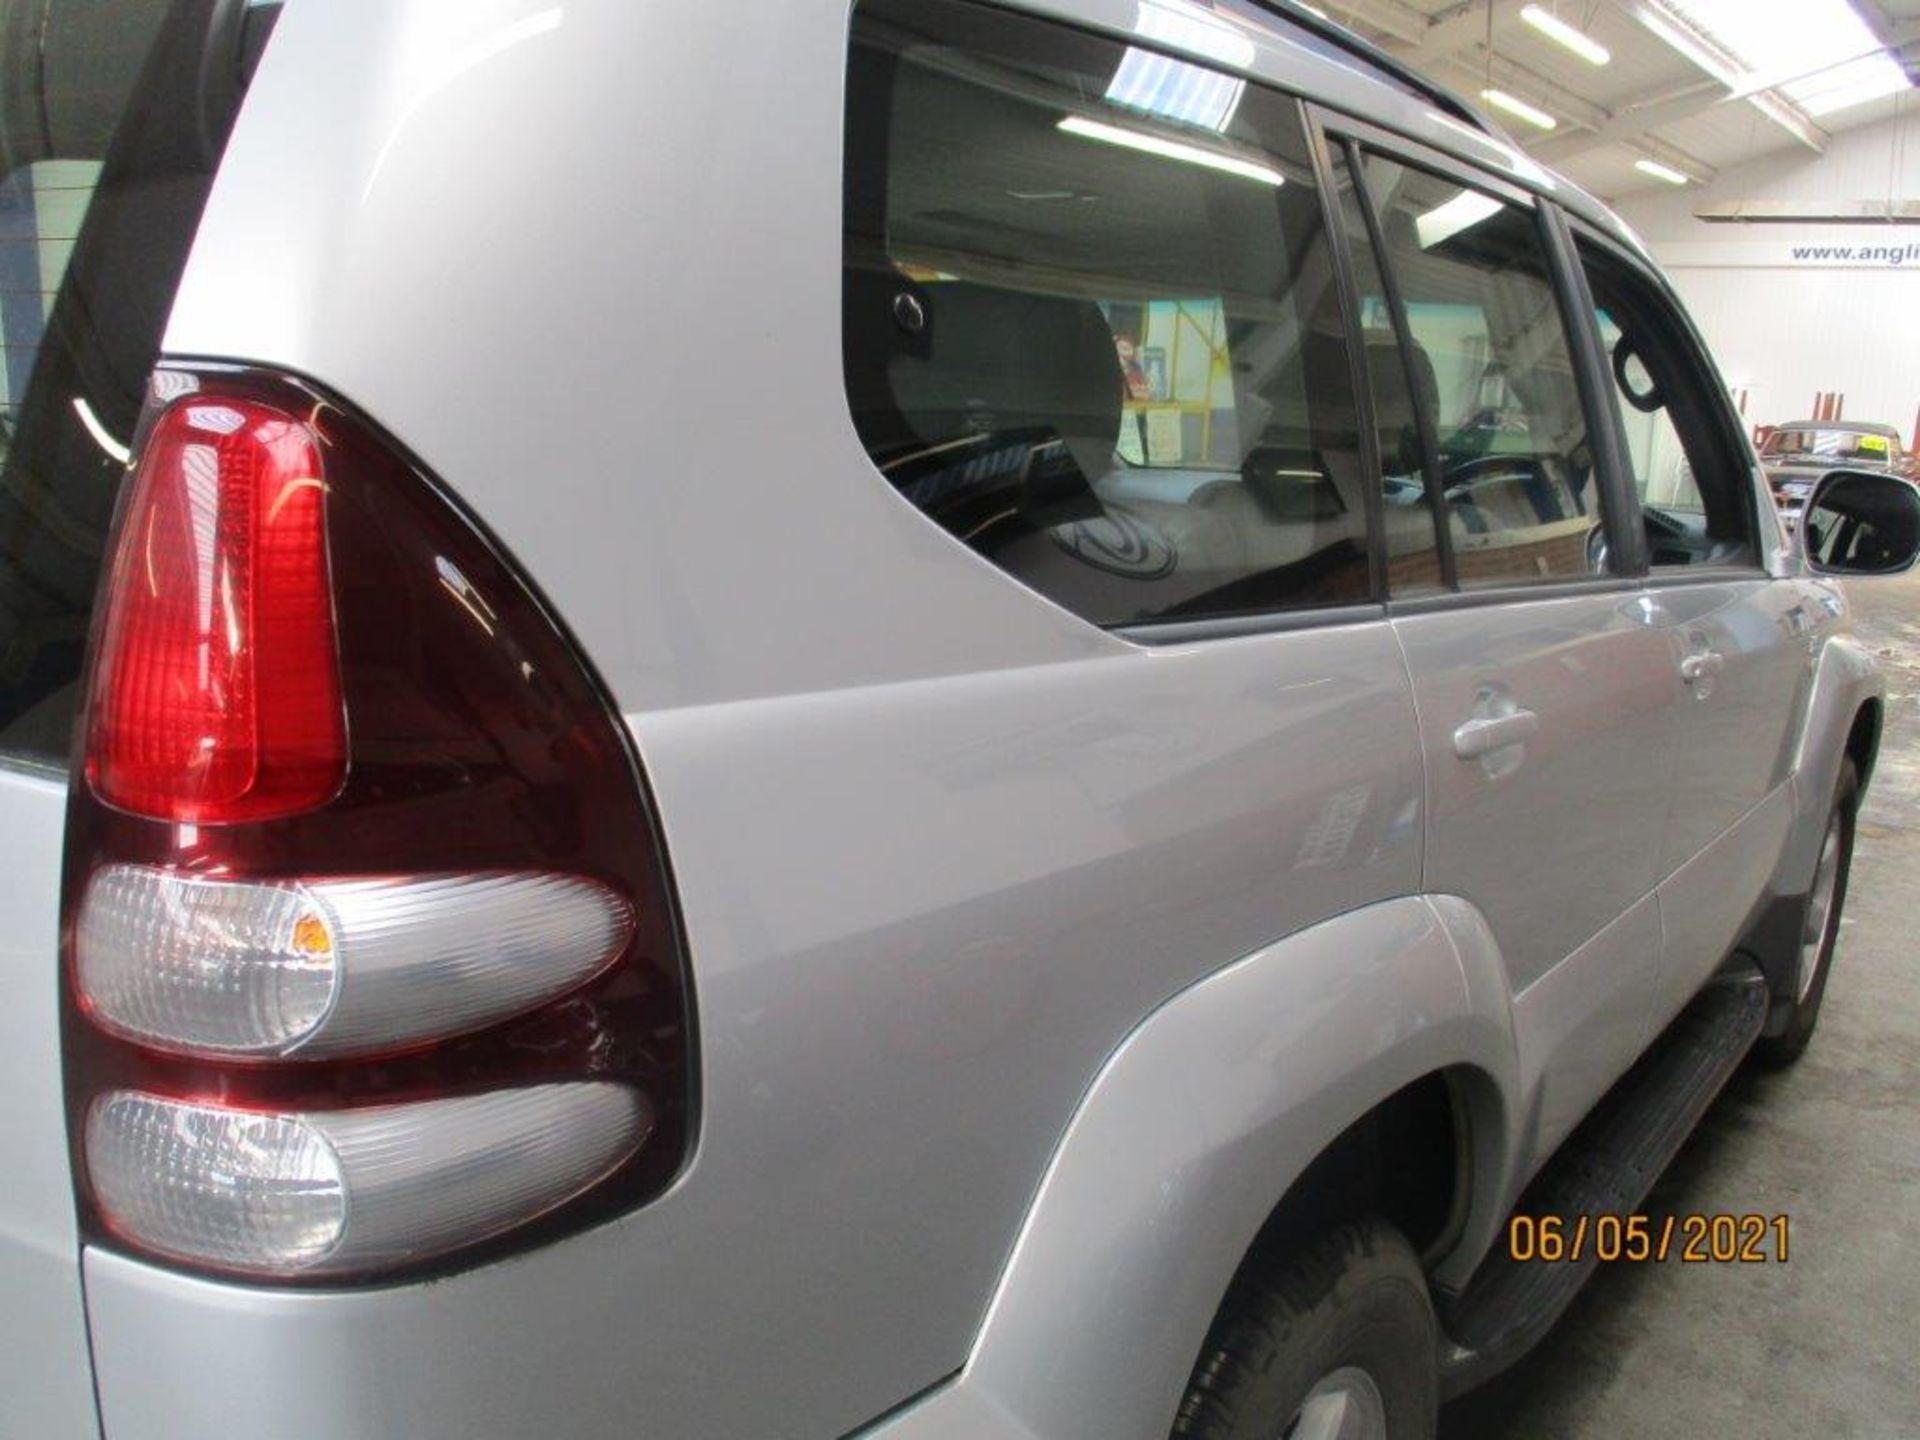 07 57 Toyota L/Cruiser LC4 D 4D - Image 12 of 32